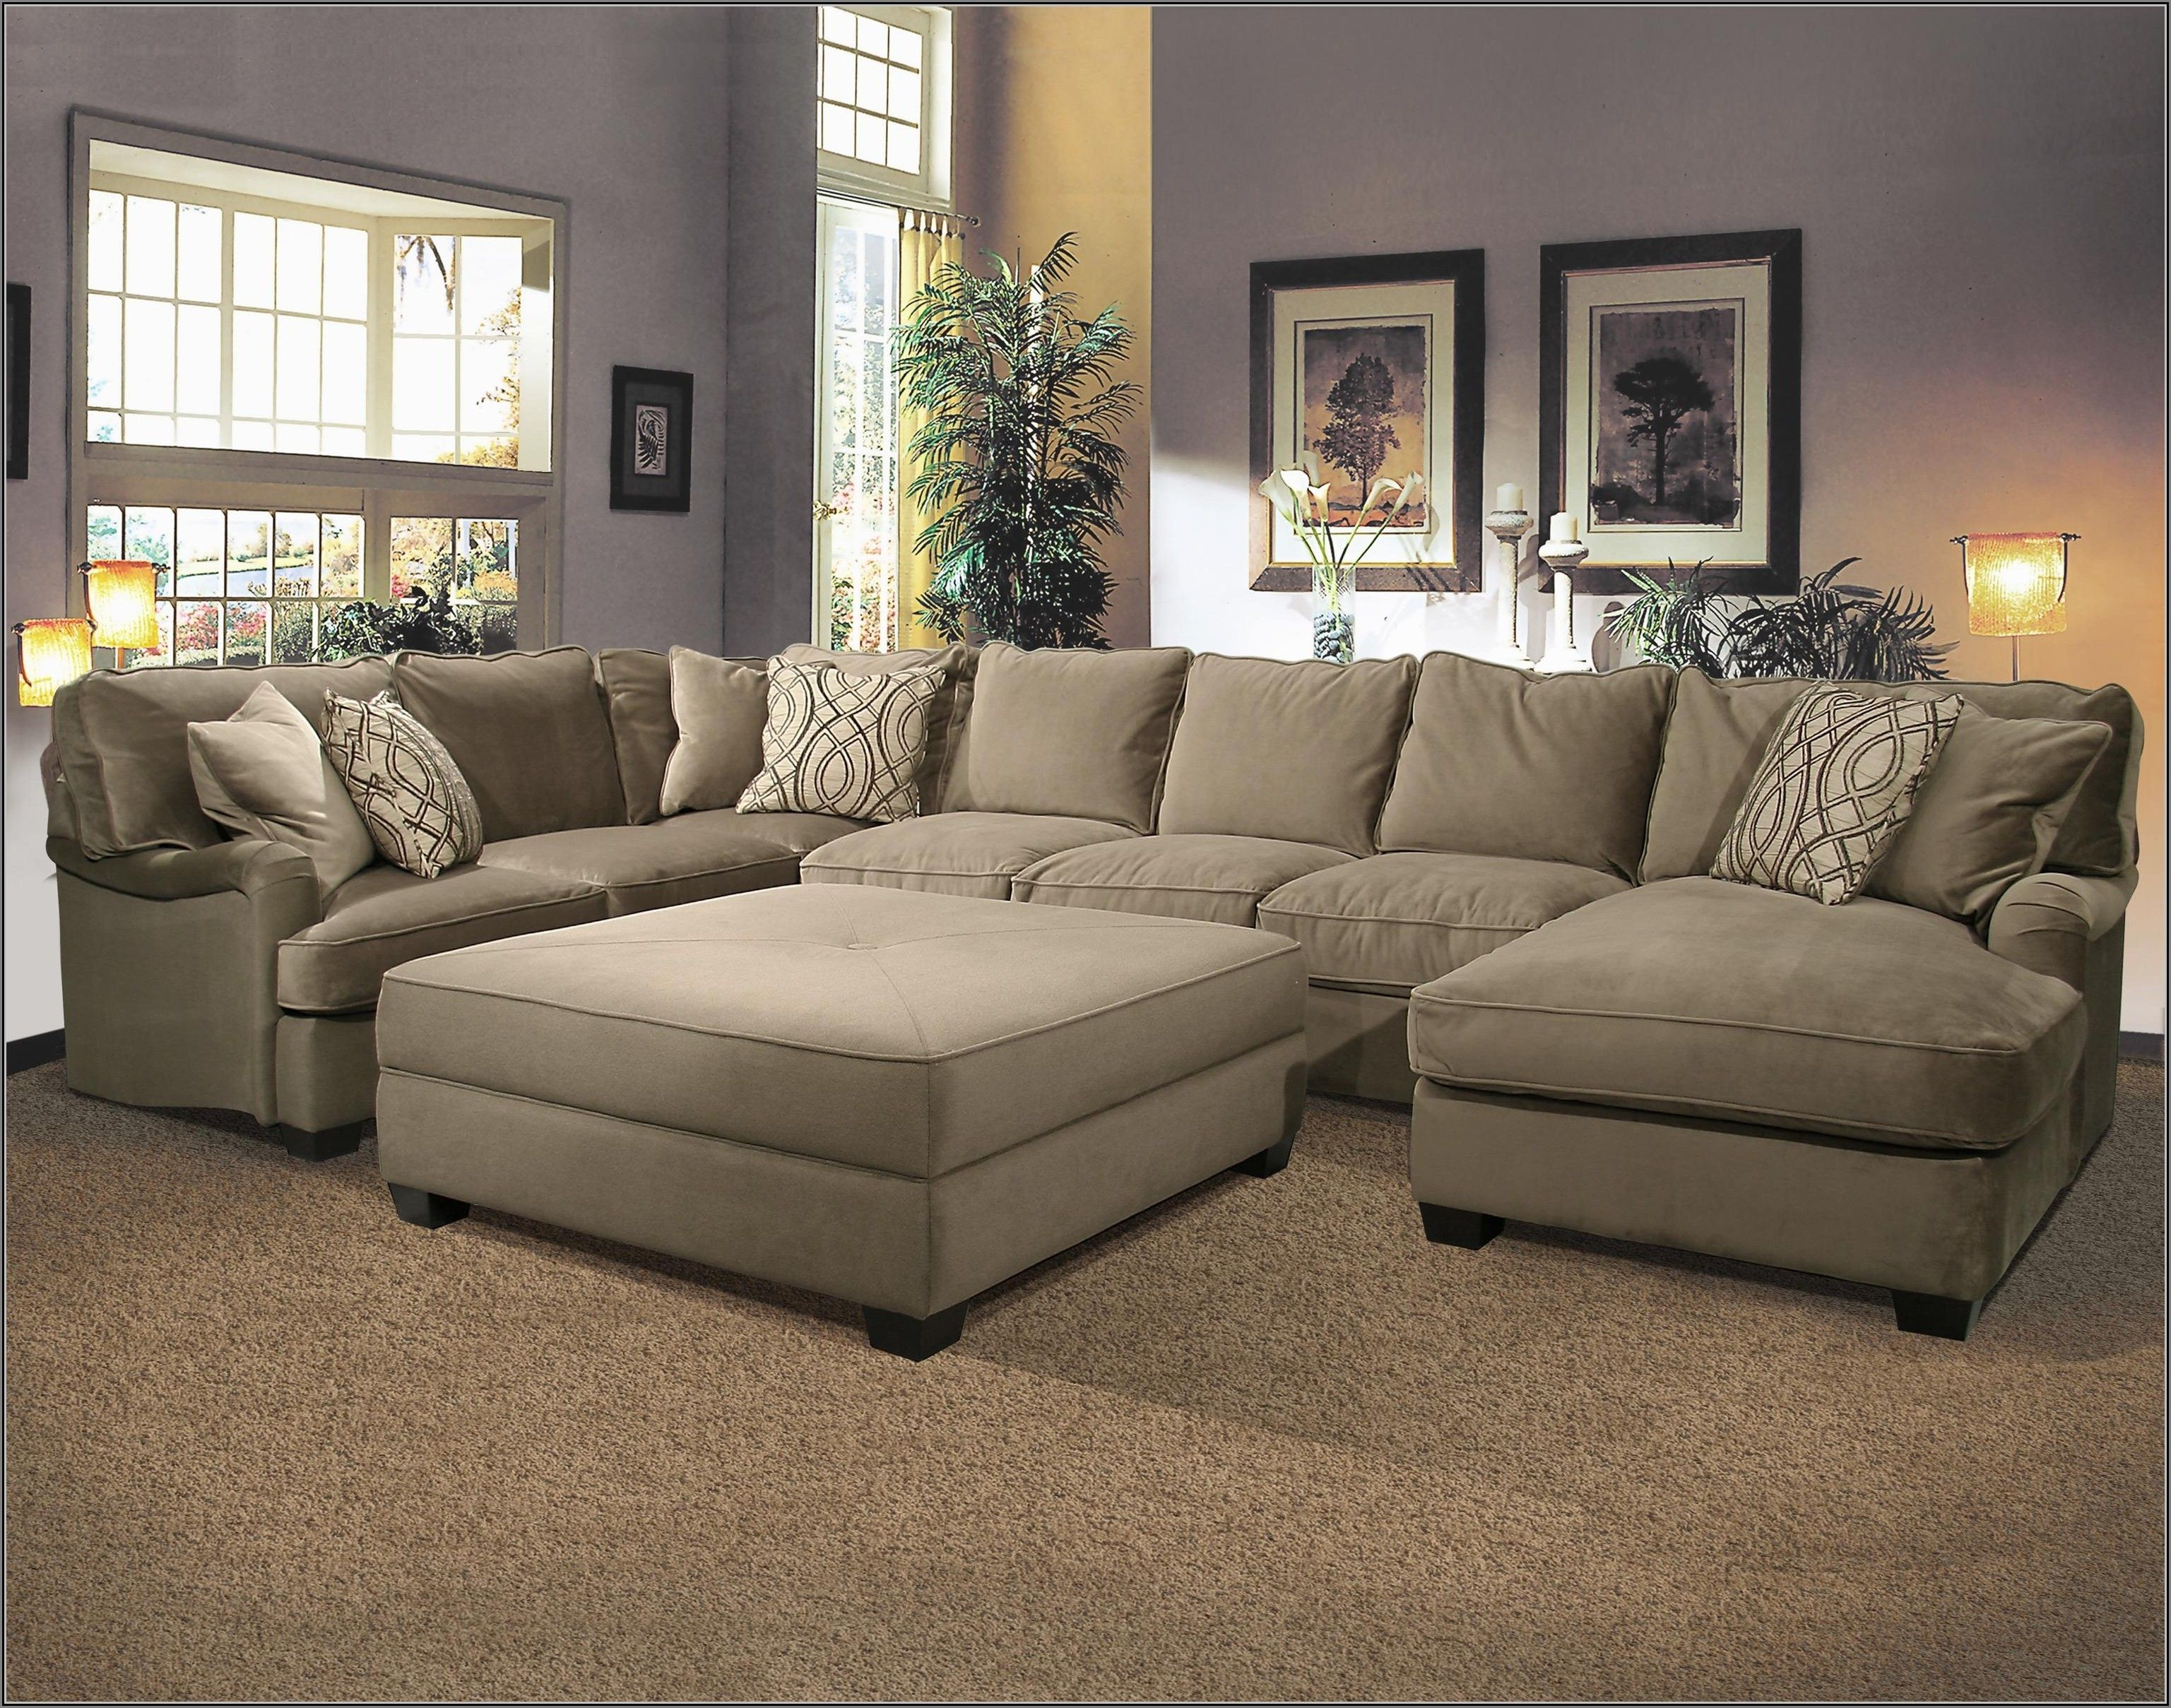 Couches With Large Ottoman In 2020 Large Sectional Sofa